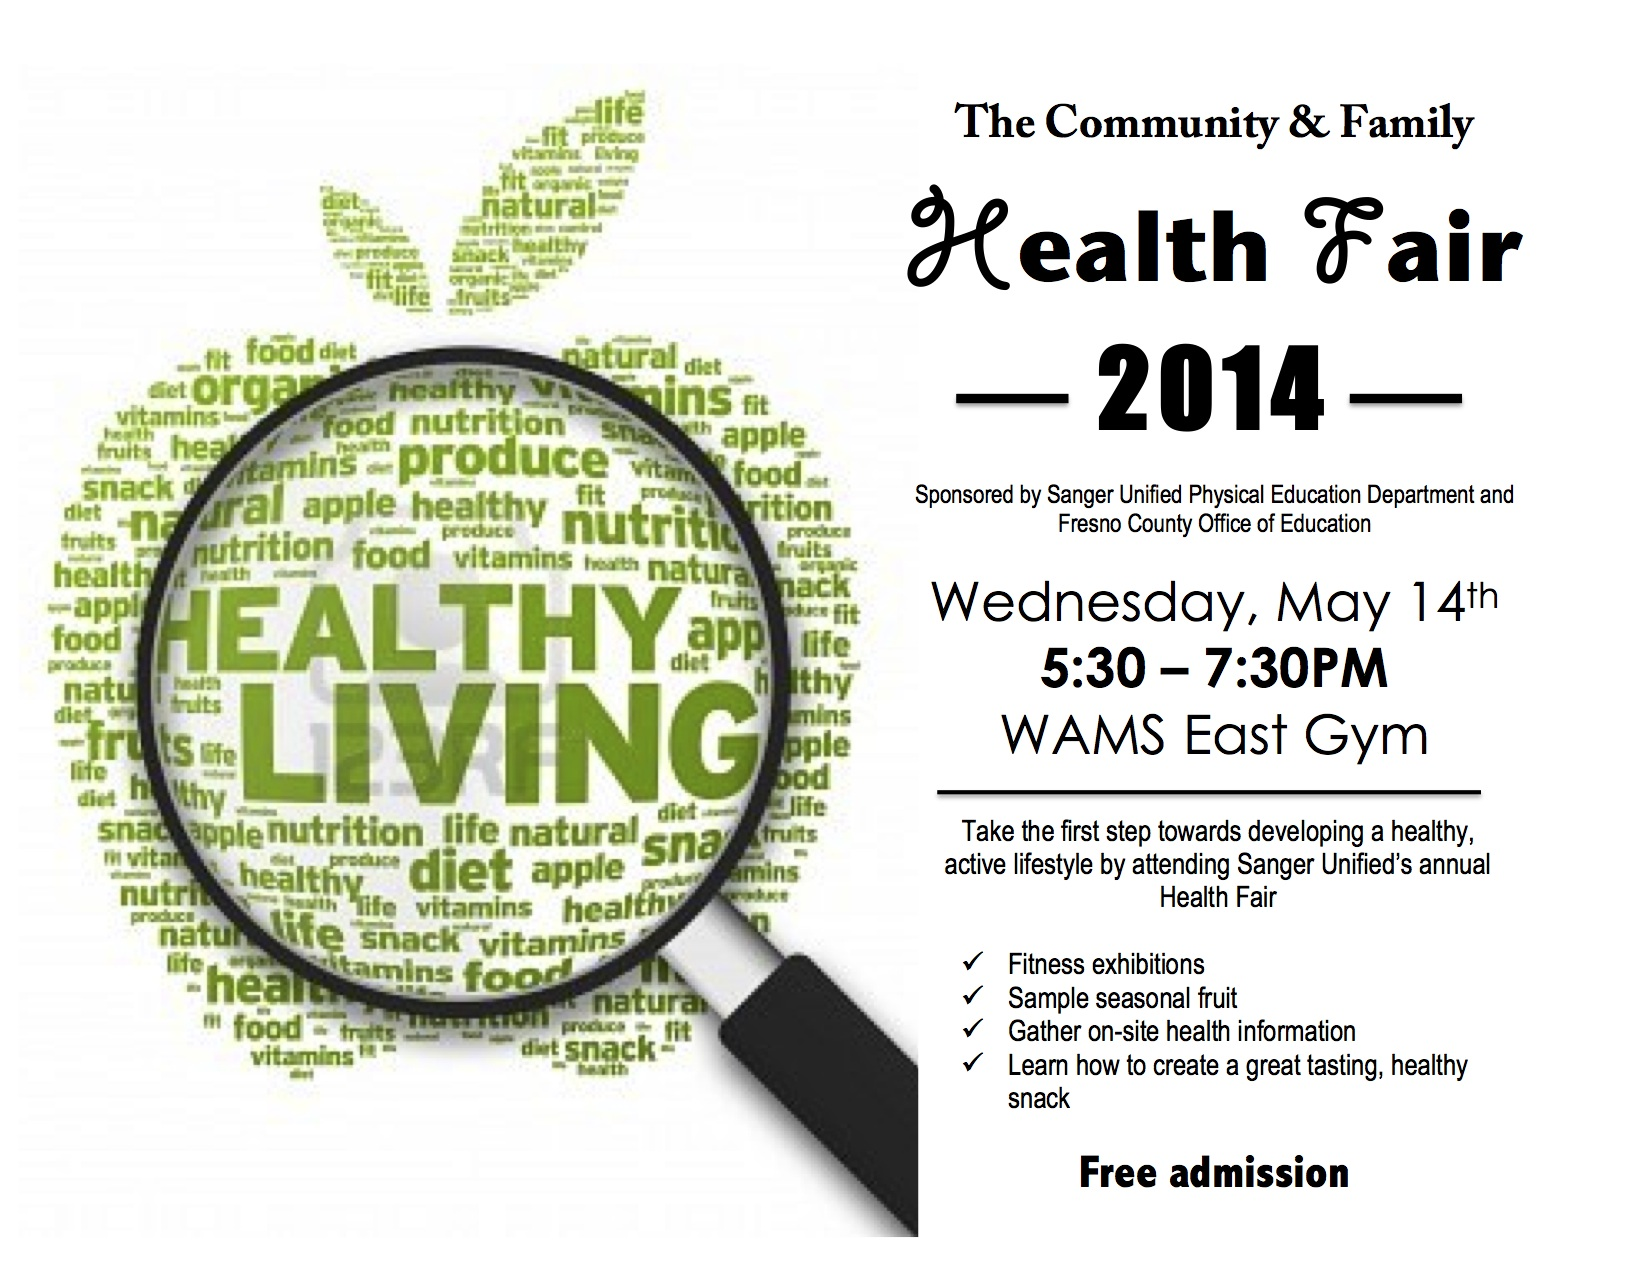 Community & Family Health Fair 2014 - The Sanger Scene